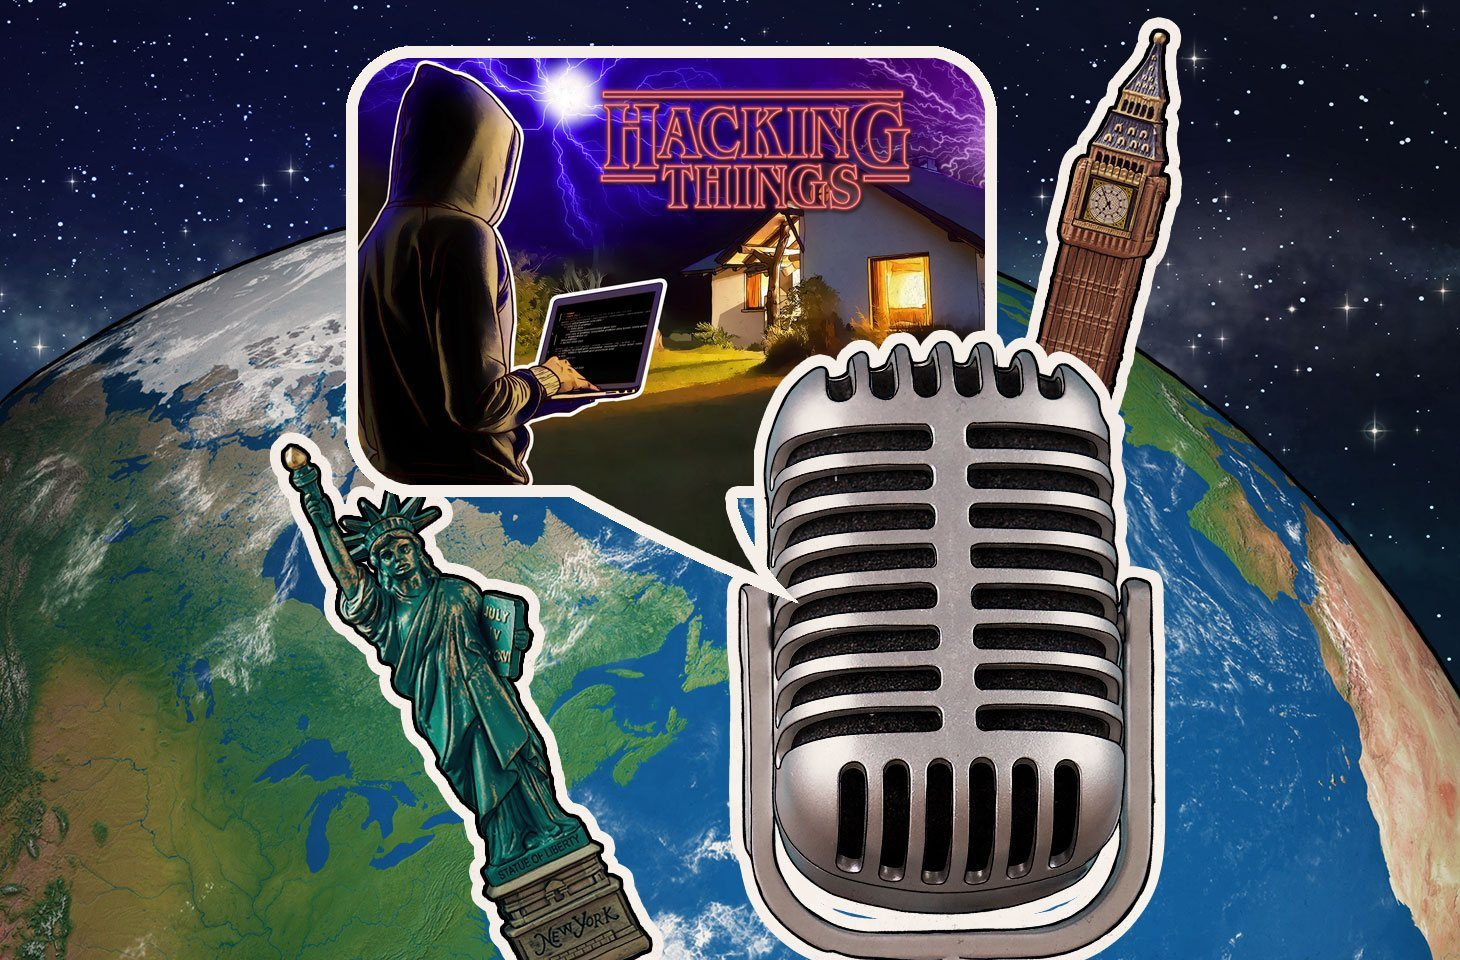 Dave and Jeff discuss the latest trend in US cities paying the ransom, hacking the smart home, Cirque du Soleil app issues and more.